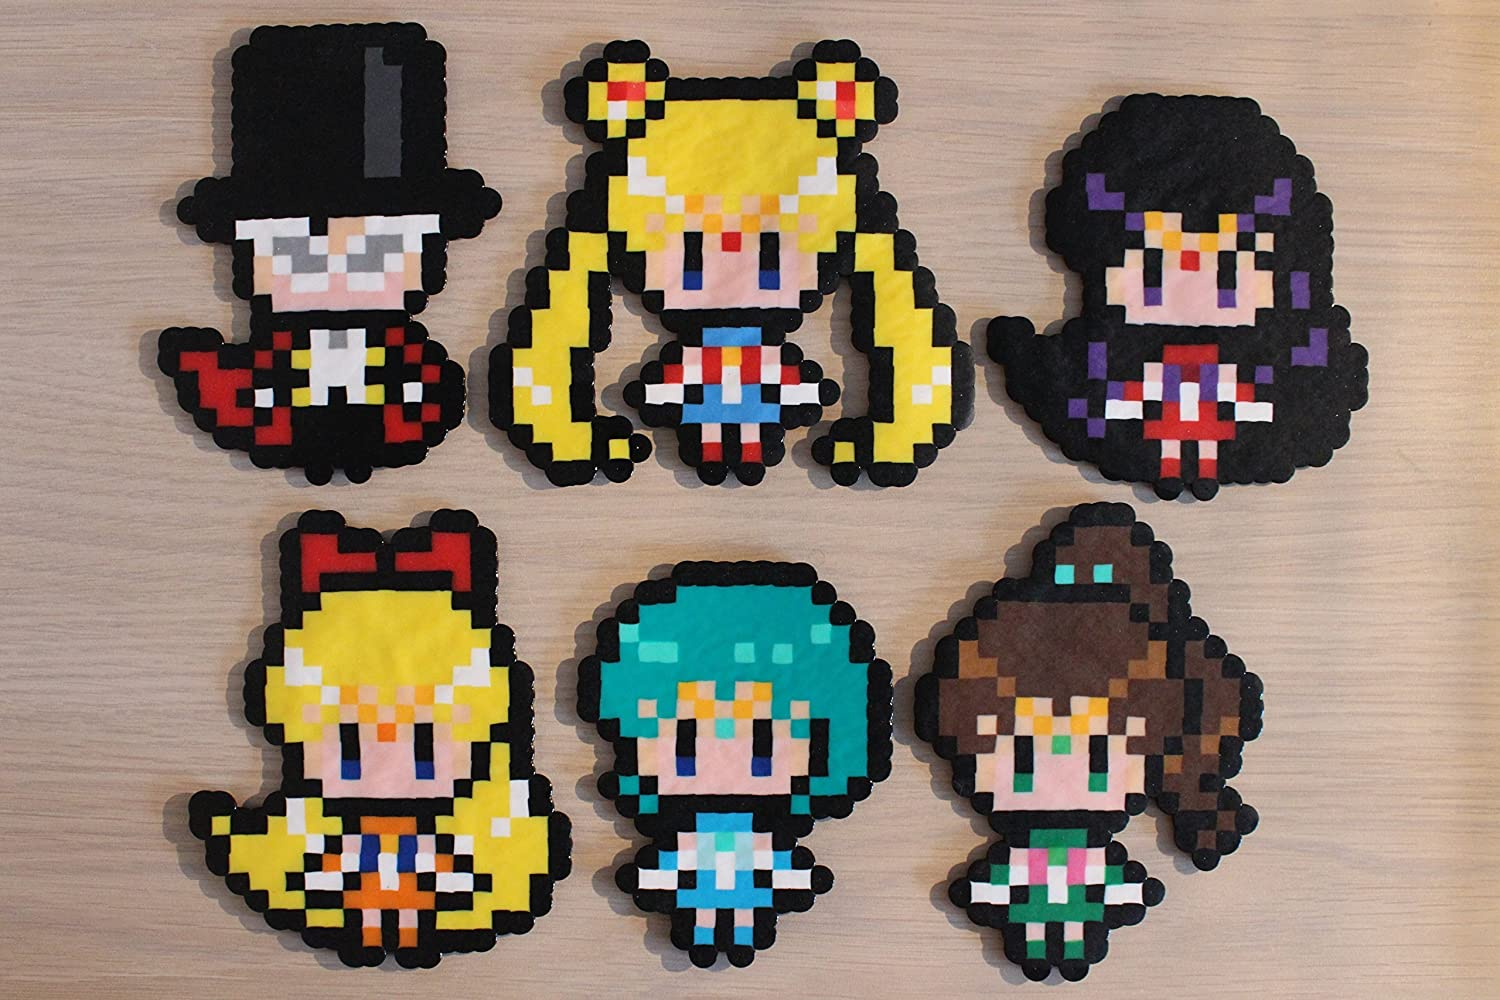 Sailor Moon Pixel Art Bead Sprites from the Sailor Moon Series